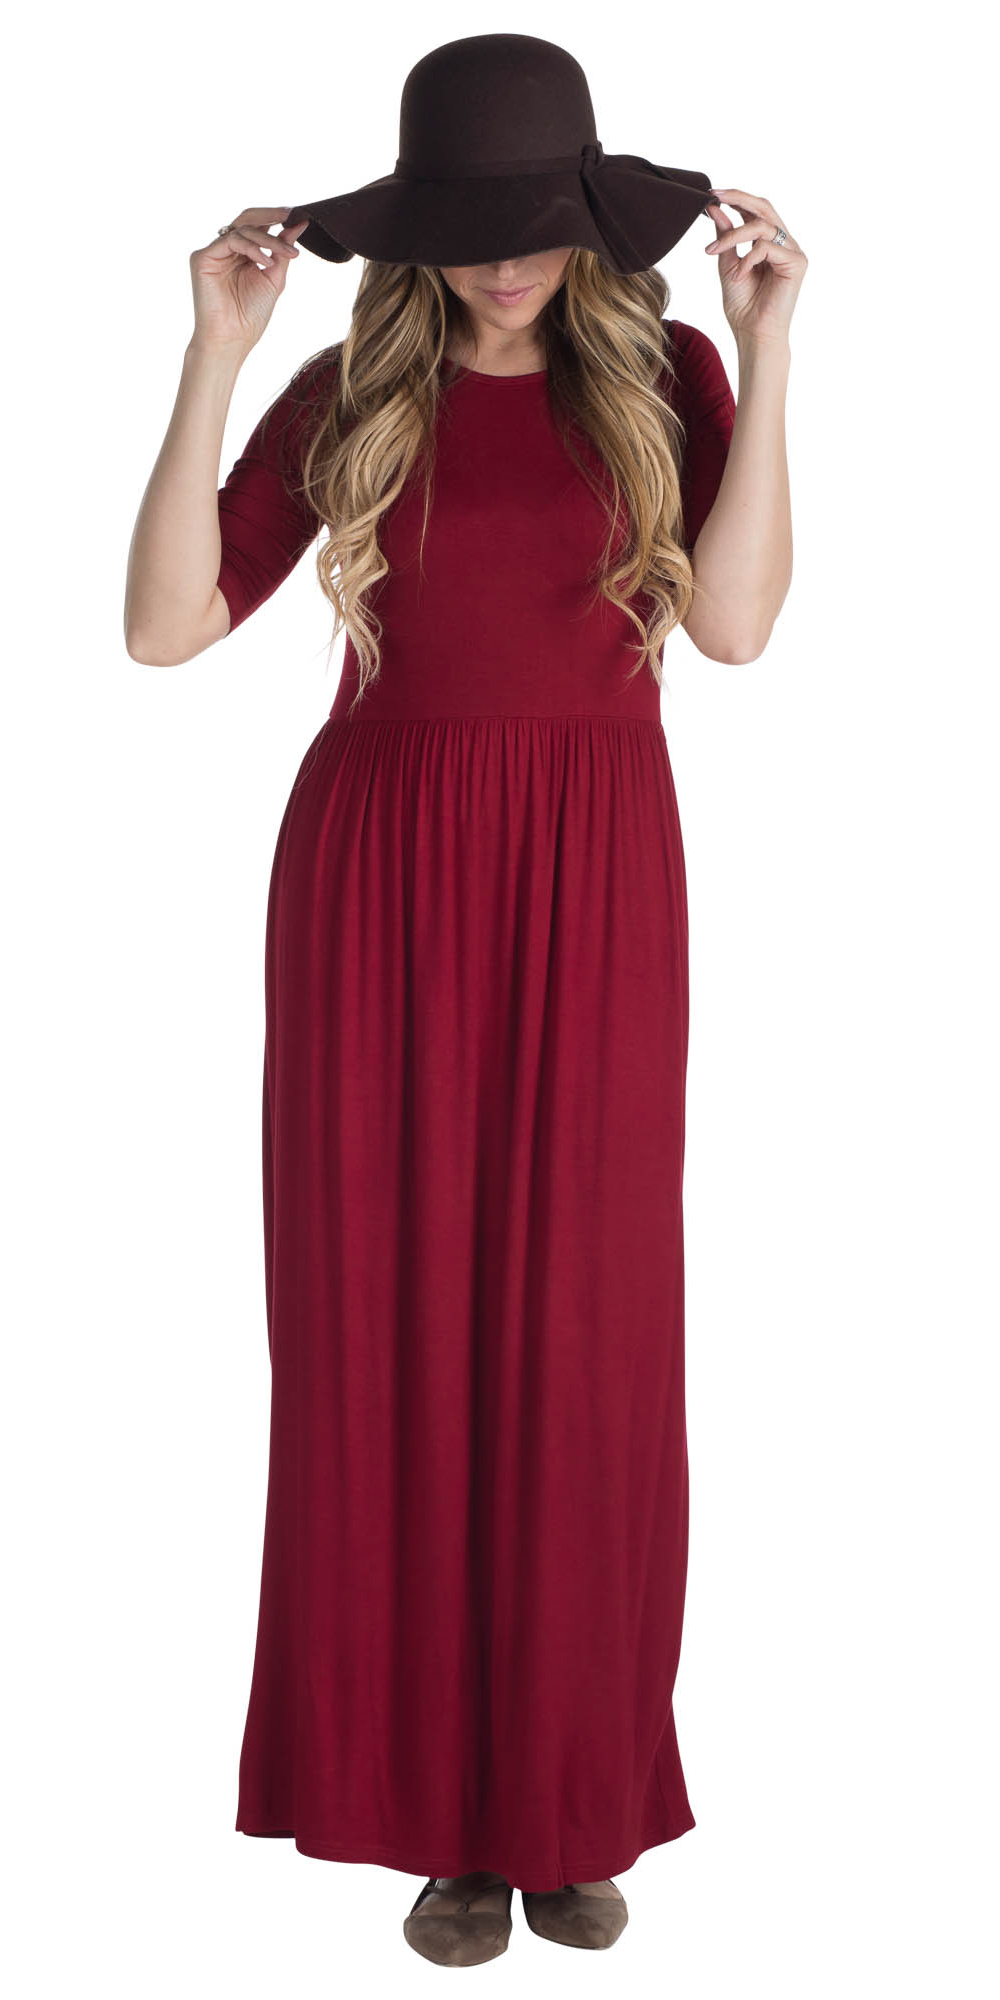 77e95d3c4e07 JenClothing Half Sleeve Modest Maxi Dress in Sun-Dried Tomato Red